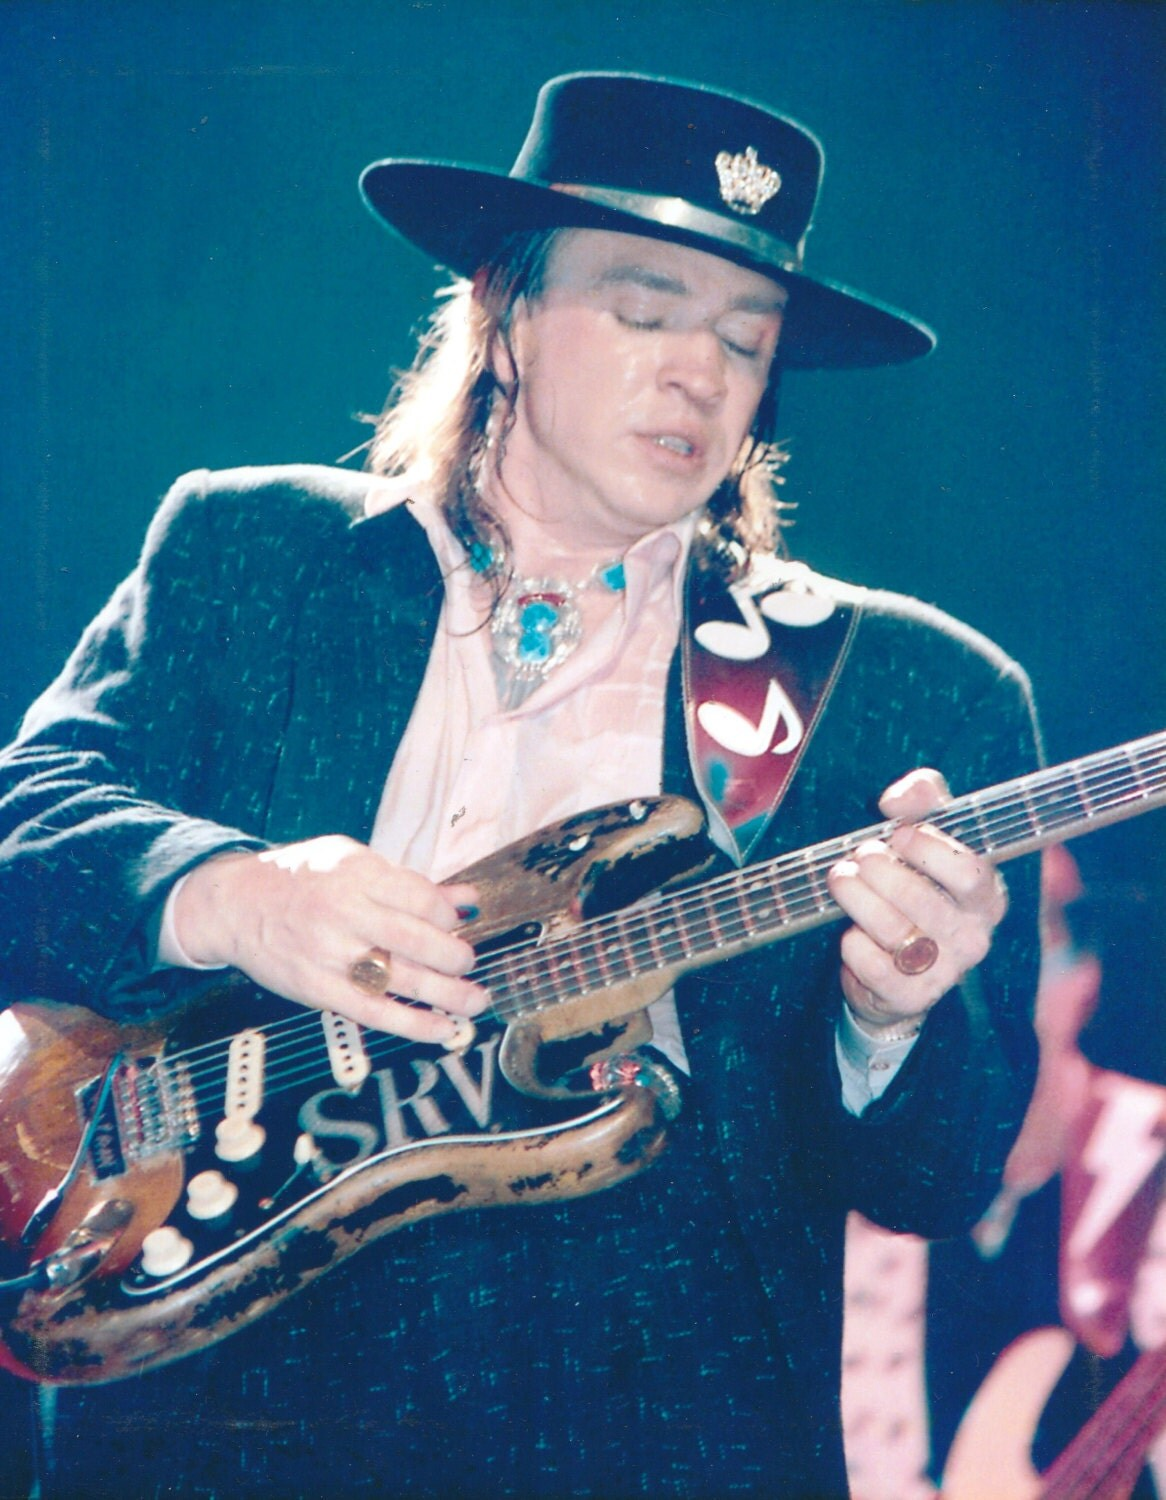 vintage stevie ray vaughan photo 1980 39 s live concert. Black Bedroom Furniture Sets. Home Design Ideas